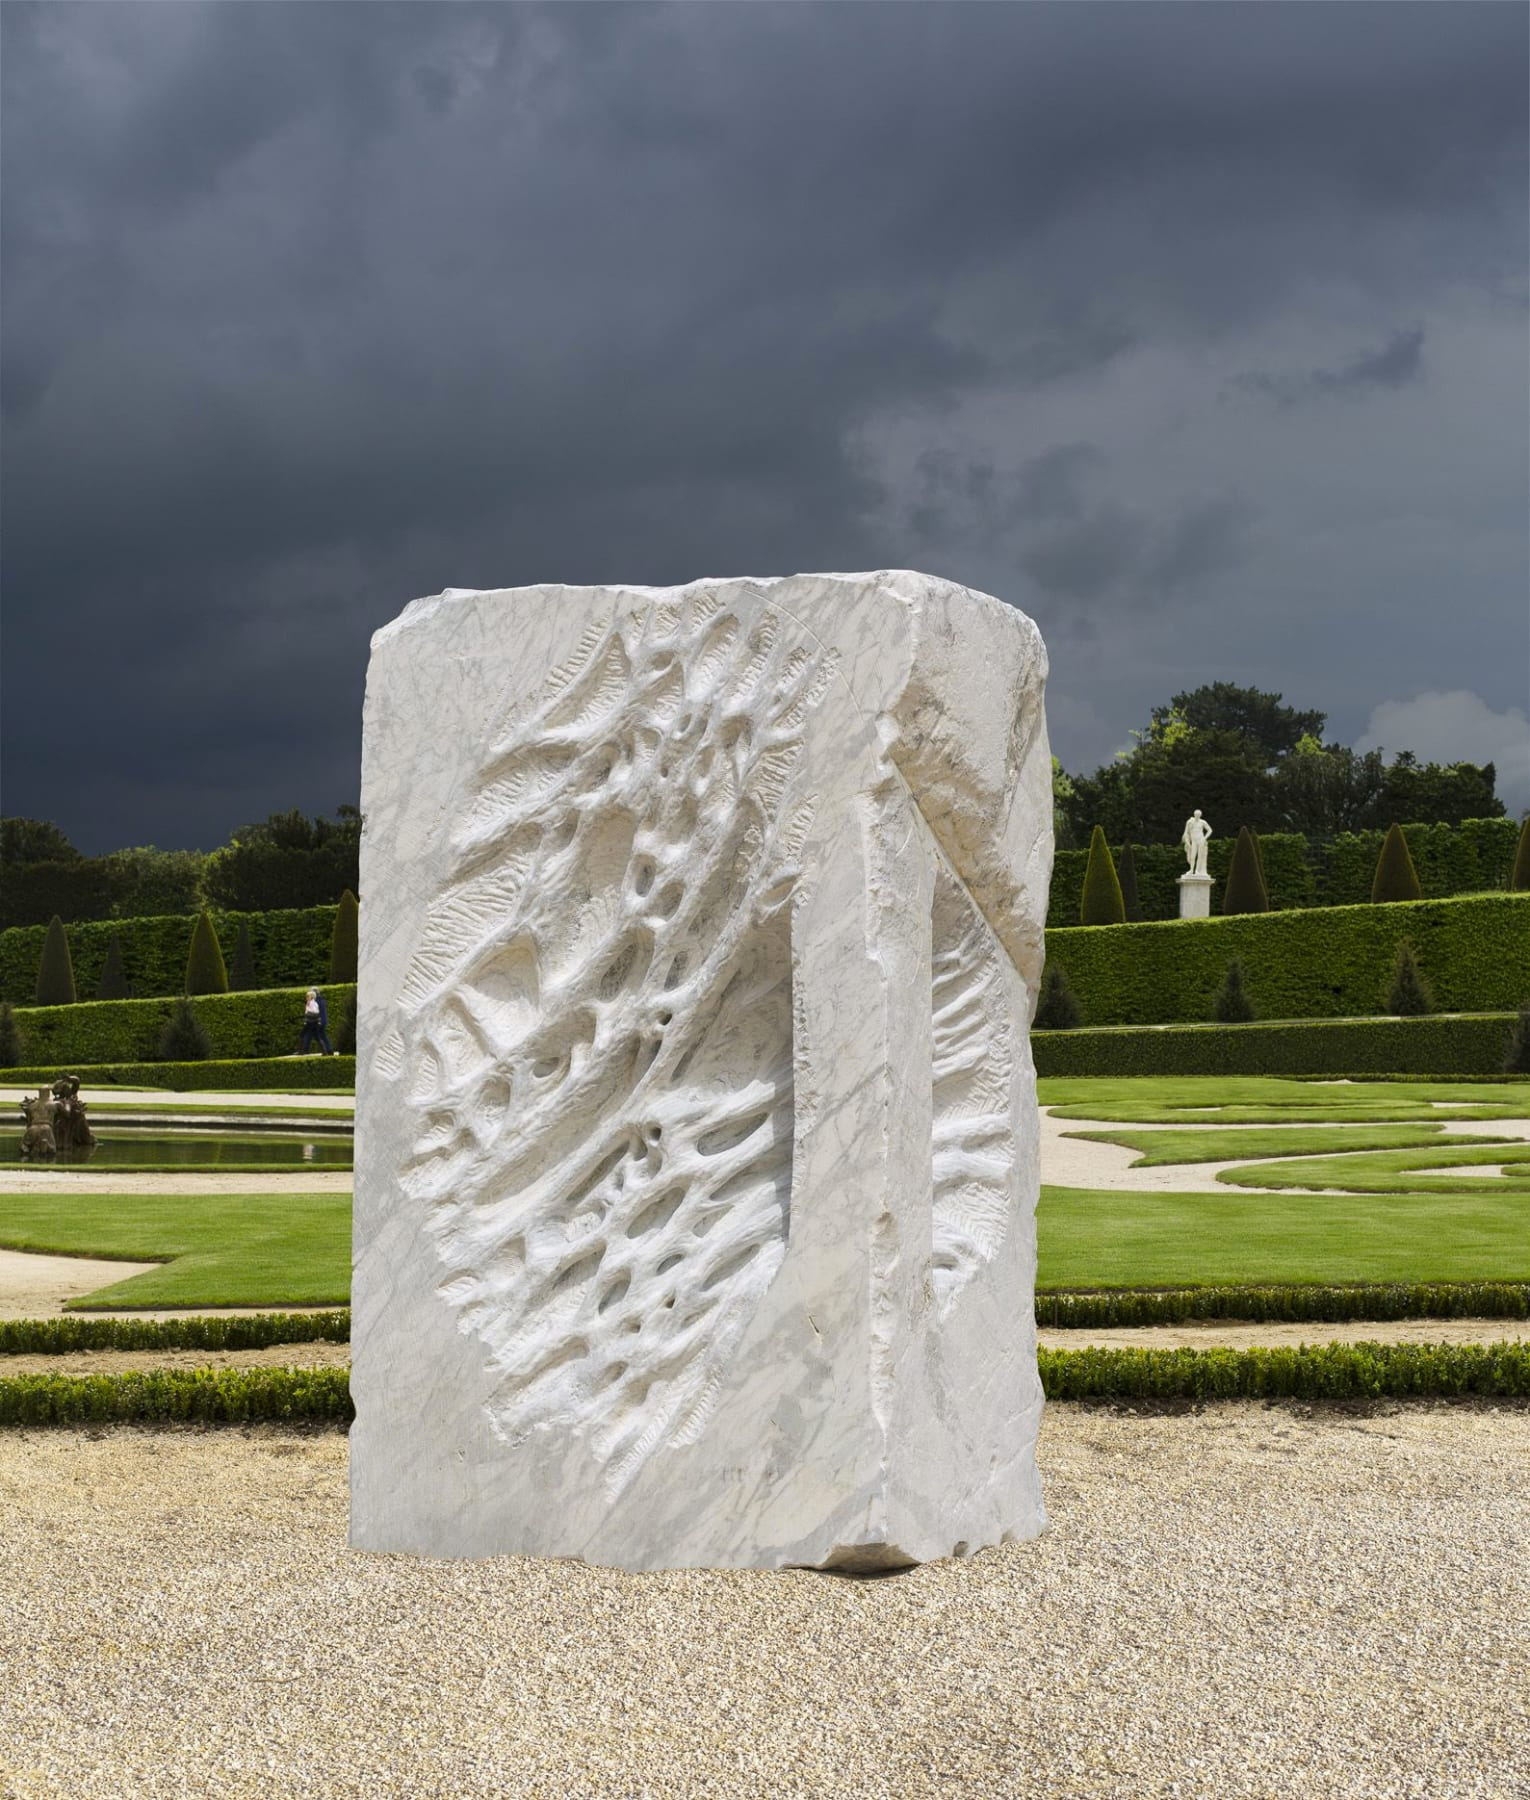 a large grey, carved slab of stone by Giuseppe Penone displayed in a park